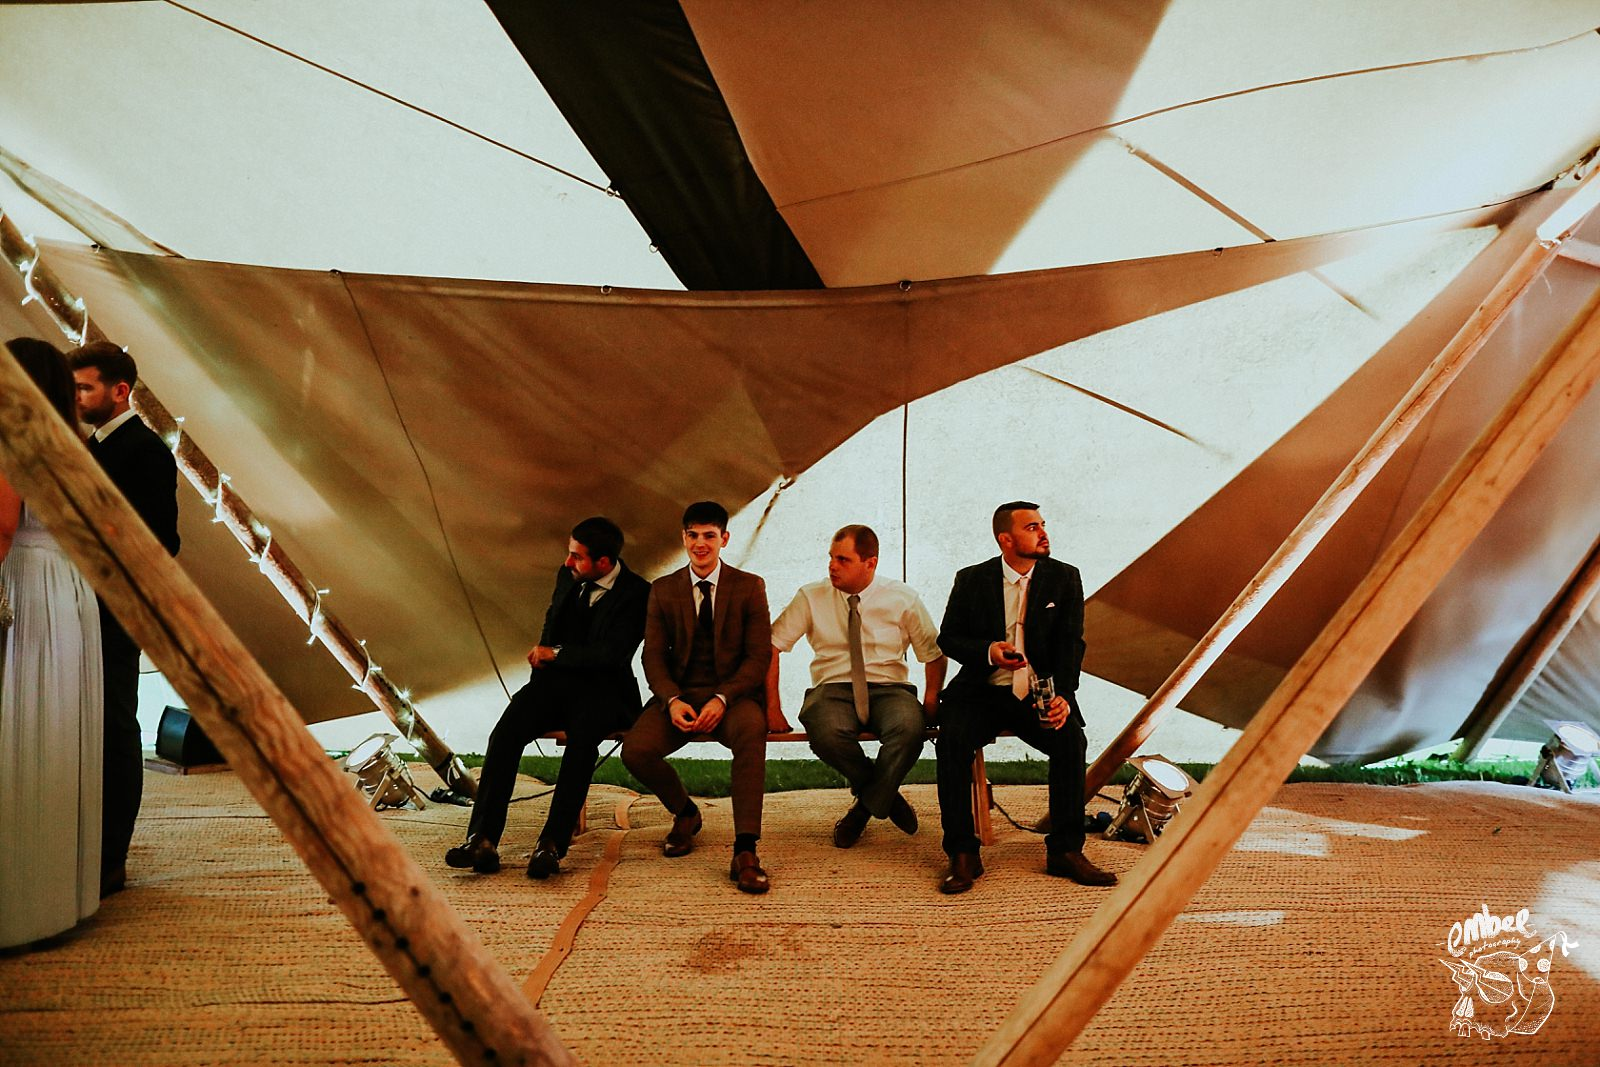 four men on a bench in teepee